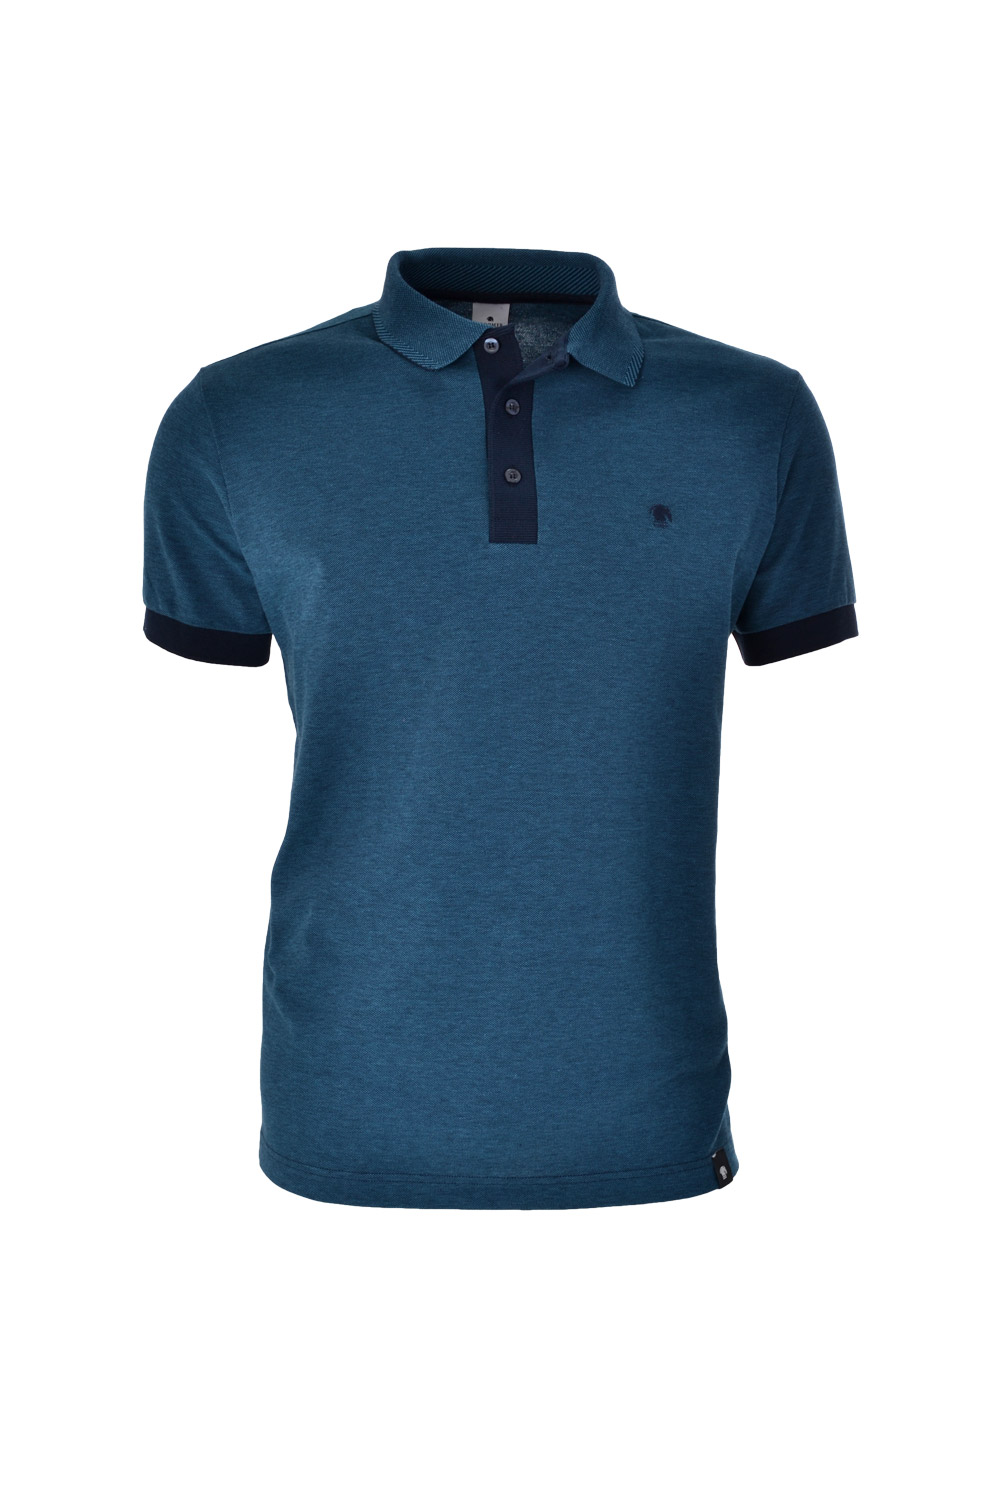 POLO MC CASUAL SLIM ALGODAO & ELASTANO STRETCH PIQUET AZUL ESCURO